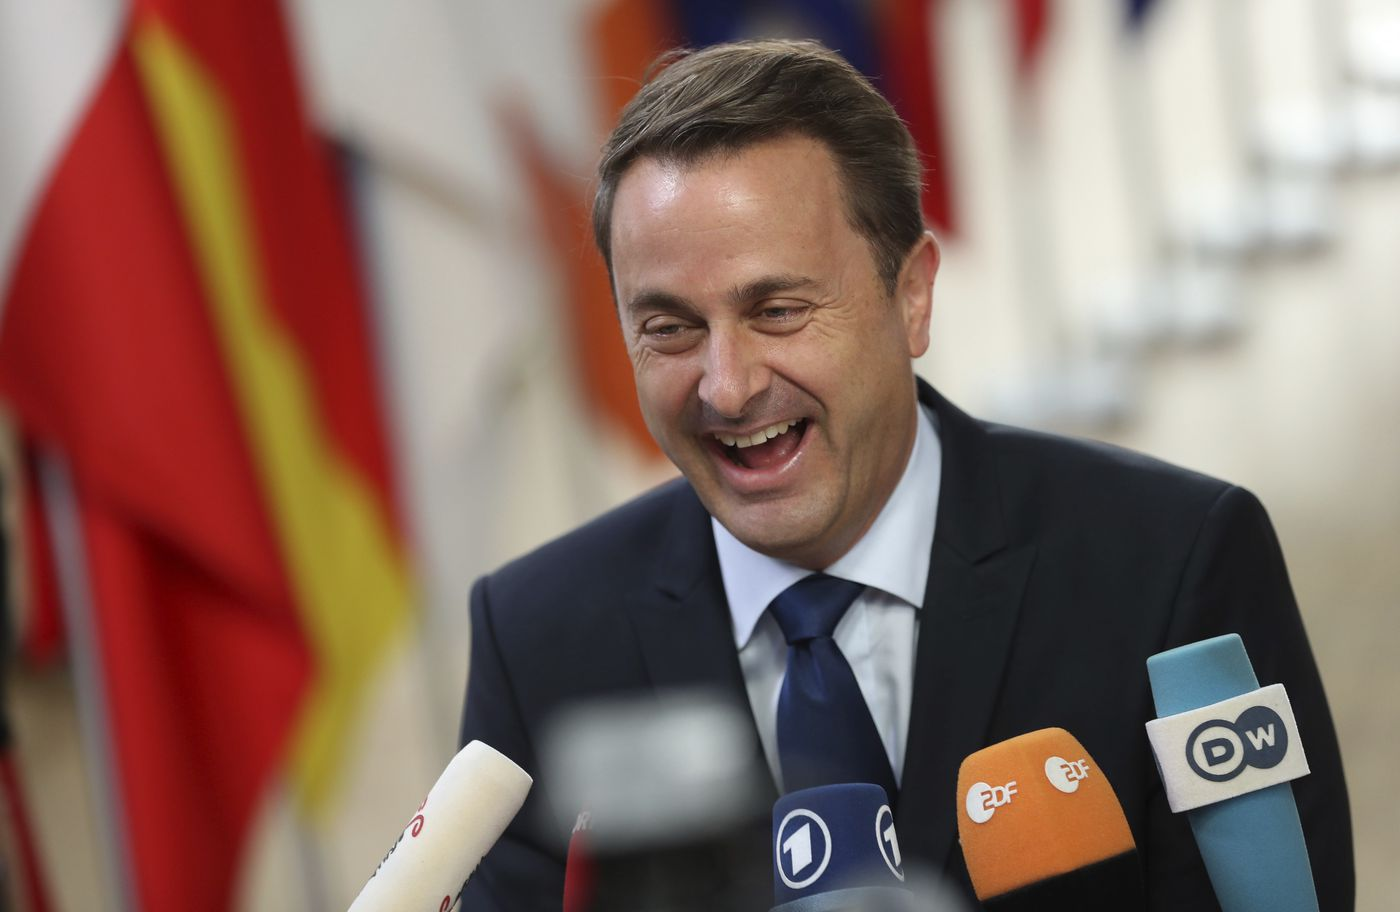 Luxembourg's Prime Minister Xavier Bettel speaks with the media as he arrives for an EU summit at the Europa building in Brussels, Thursday, Oct. 18, 2018. EU leaders meet for a second day on Thursday to discuss migration, cybersecurity and to try and move ahead on stalled Brexit talks. (AP Photo/Francisco Seco)